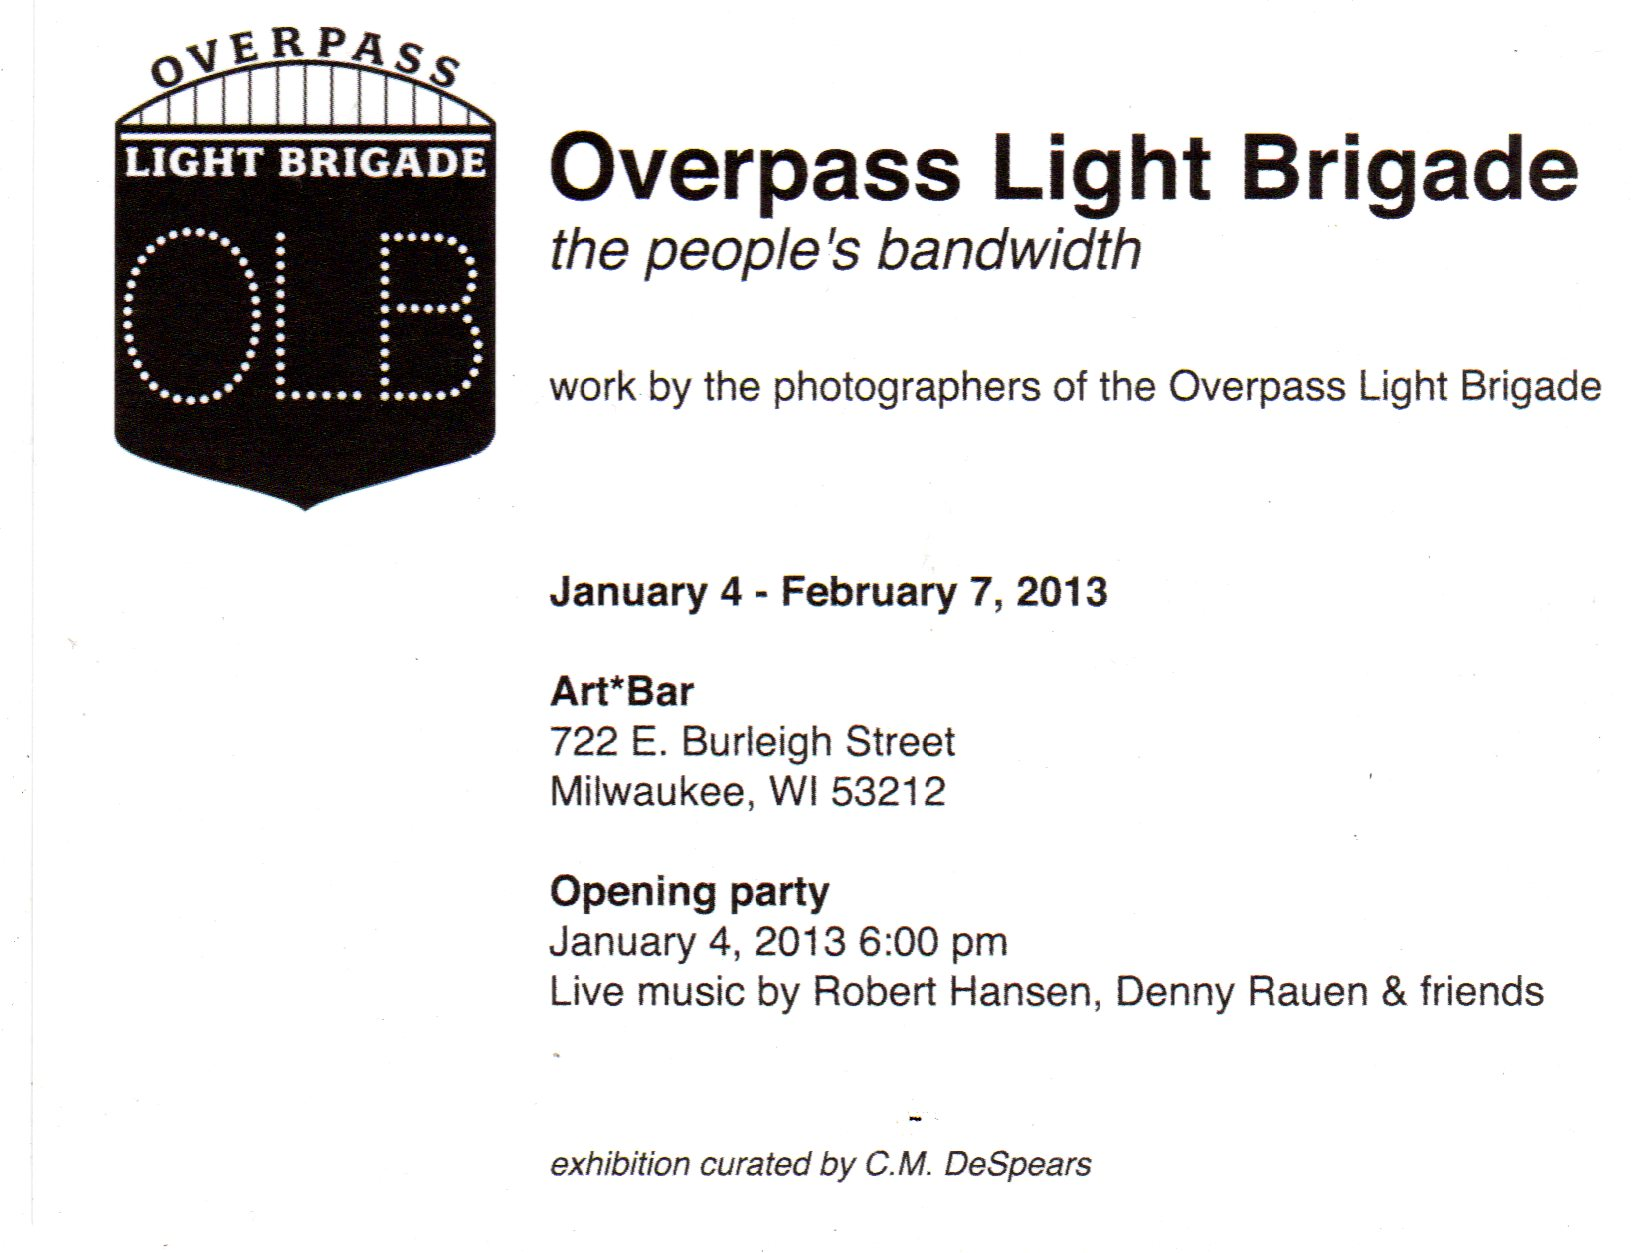 Overpass Light Brigade photo exhibit kicks off January 4th in Milwaukee